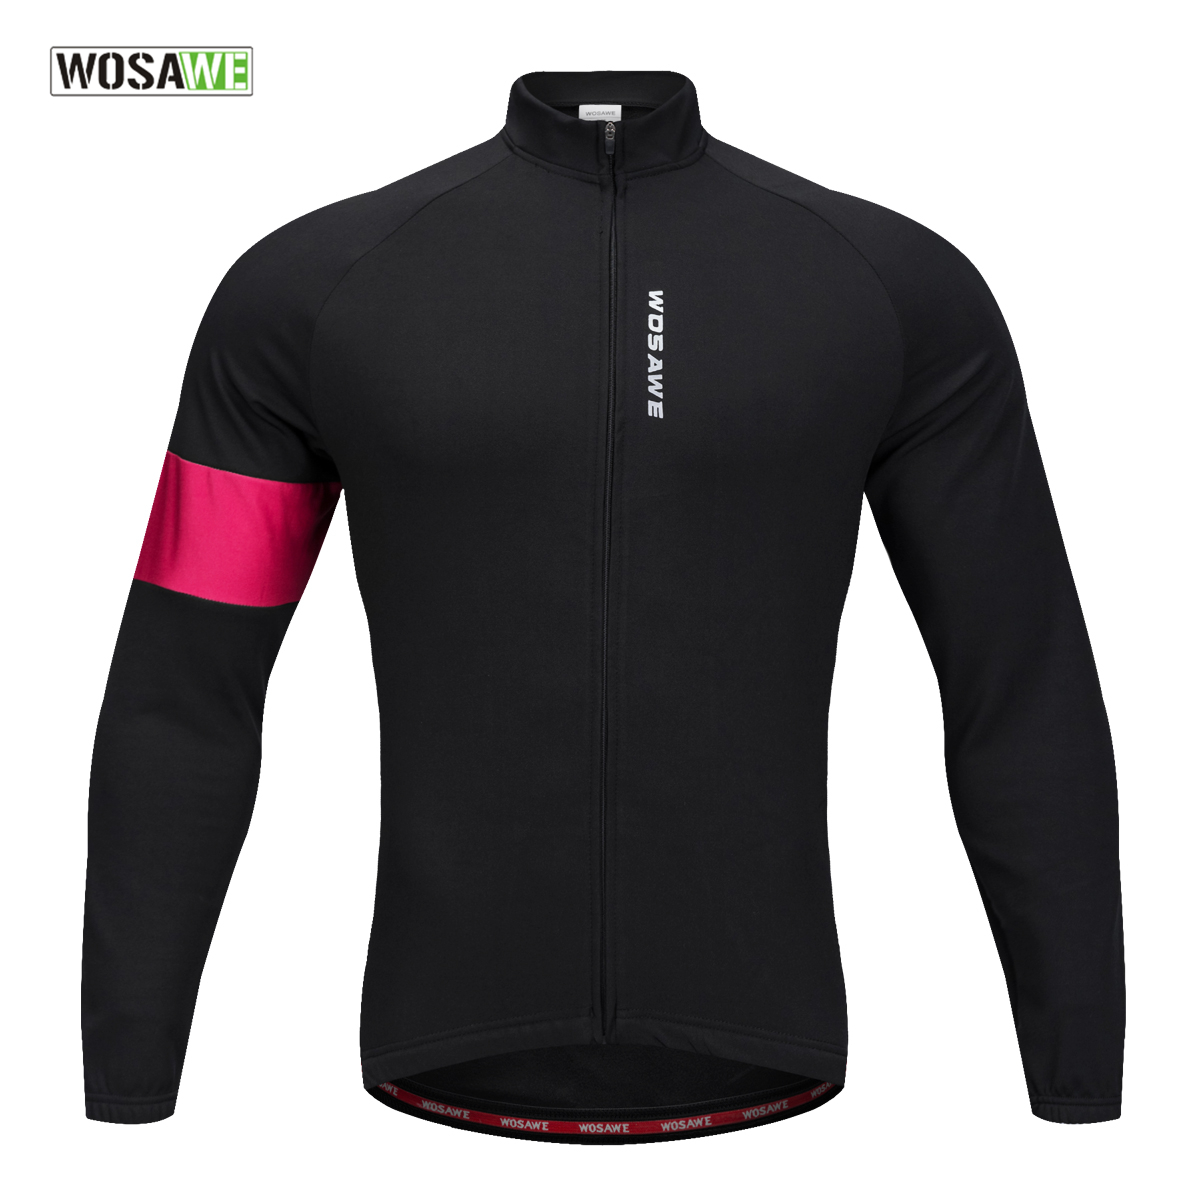 WOSAWE 2018 NEW Cycling Jacket Coat Thermal Fleece Slim Fit Cycling Clothings Long Sleeve Top Quality Bicycle Shirt For Winter 2016 new men s cycling jerseys top sleeve blue and white waves bicycle shirt white bike top breathable cycling top ilpaladin